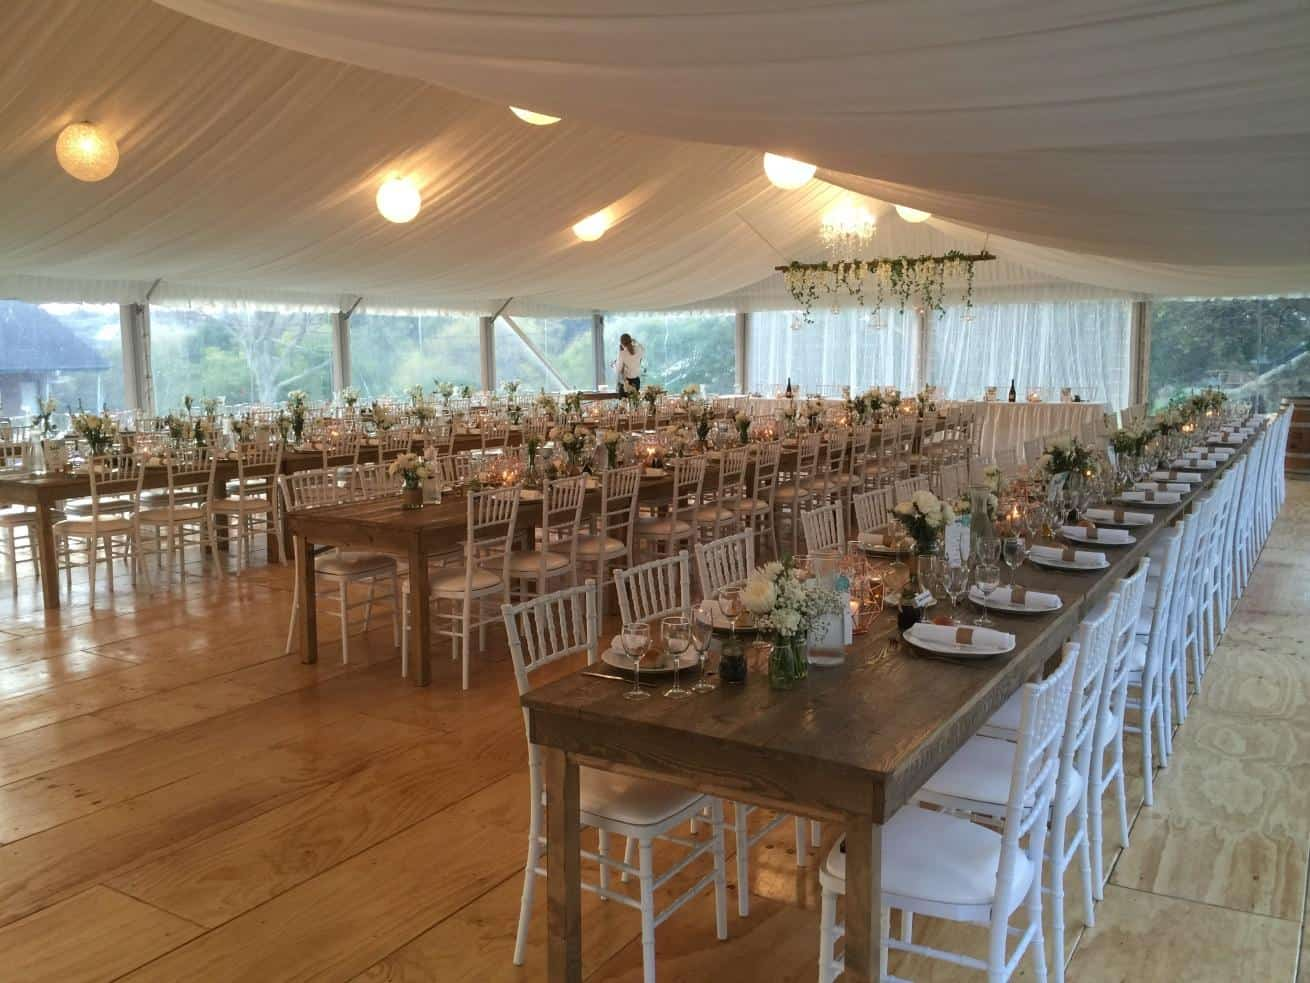 Marquee hire in hurstville: showing clear sided marquee with lining, tables and chairs fully decorated and light